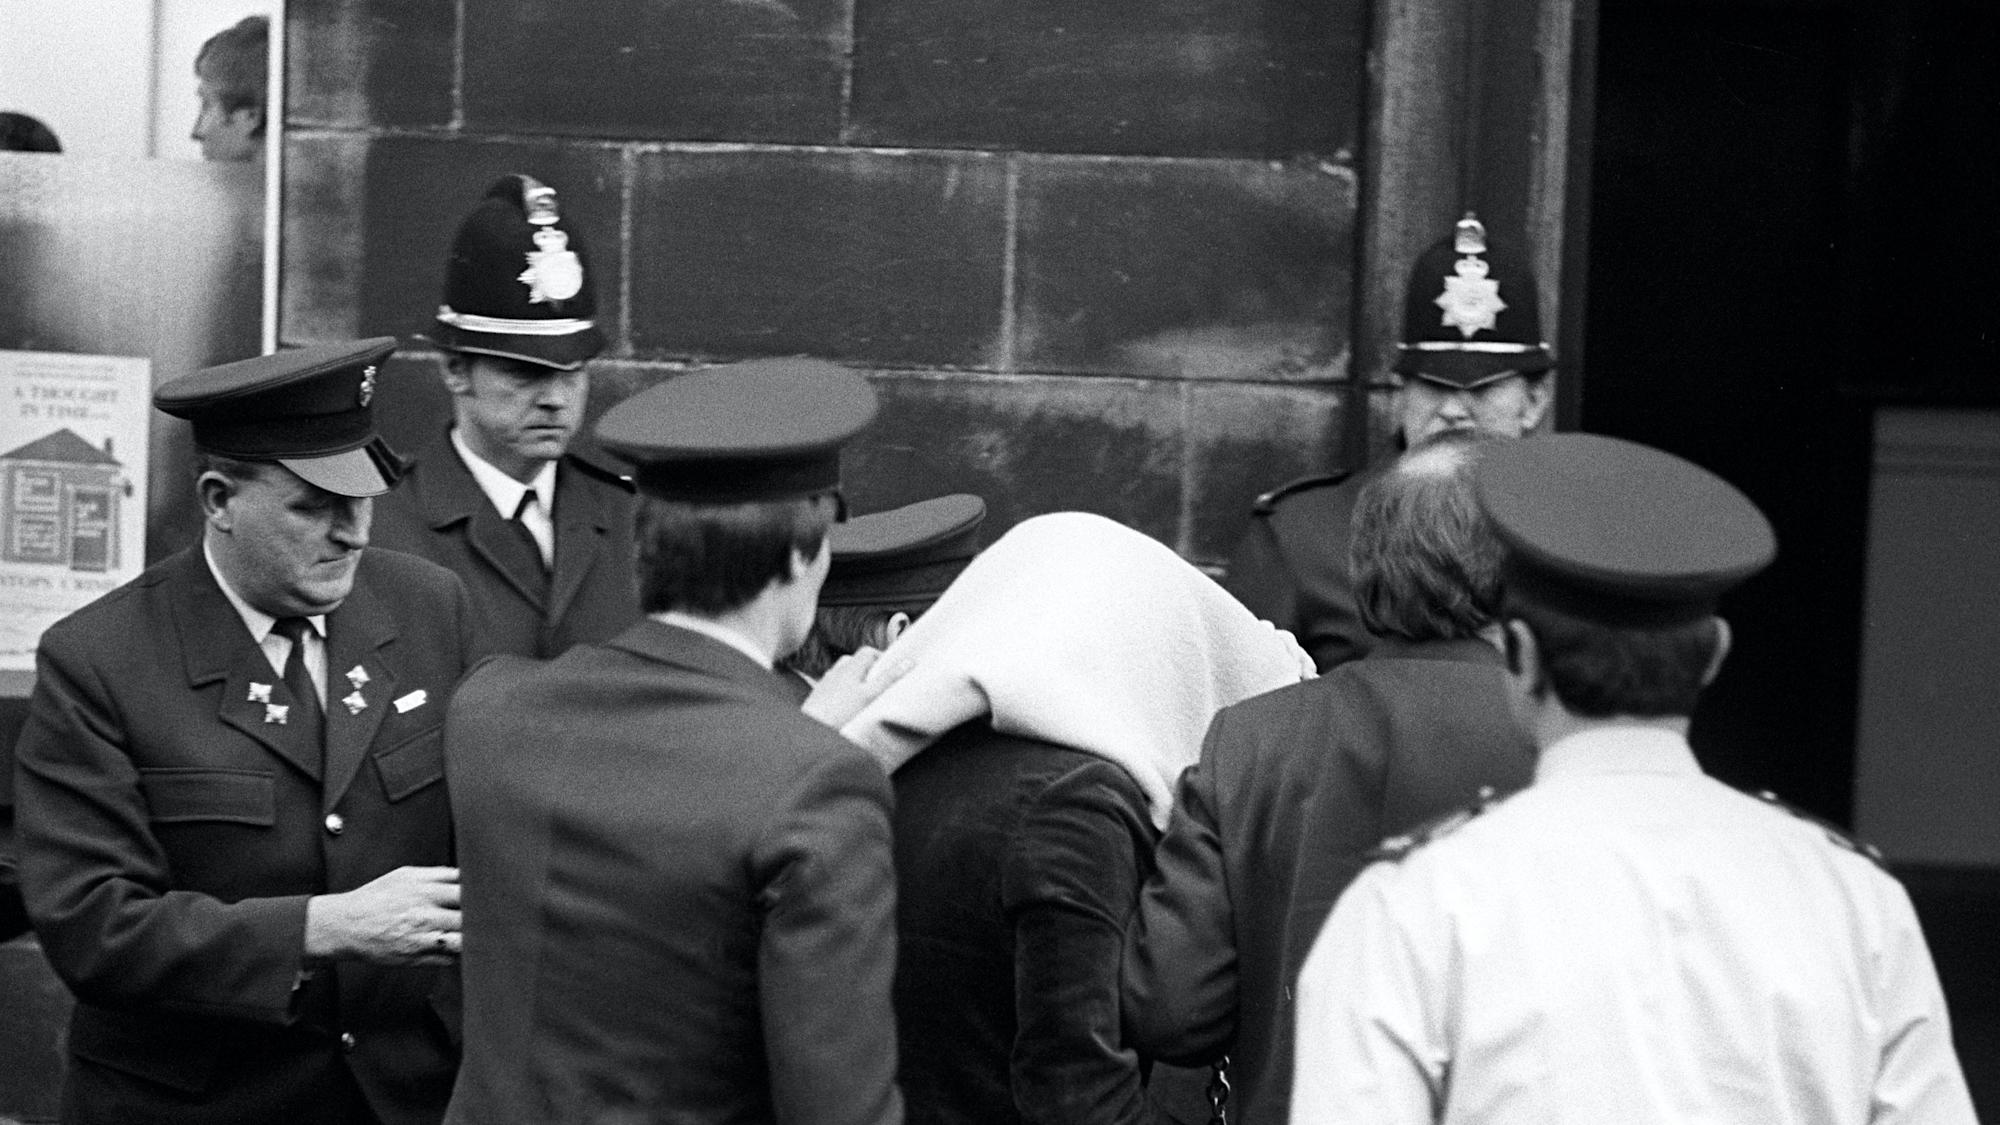 Police apologise to victims' families after Yorkshire Ripper dies aged 74